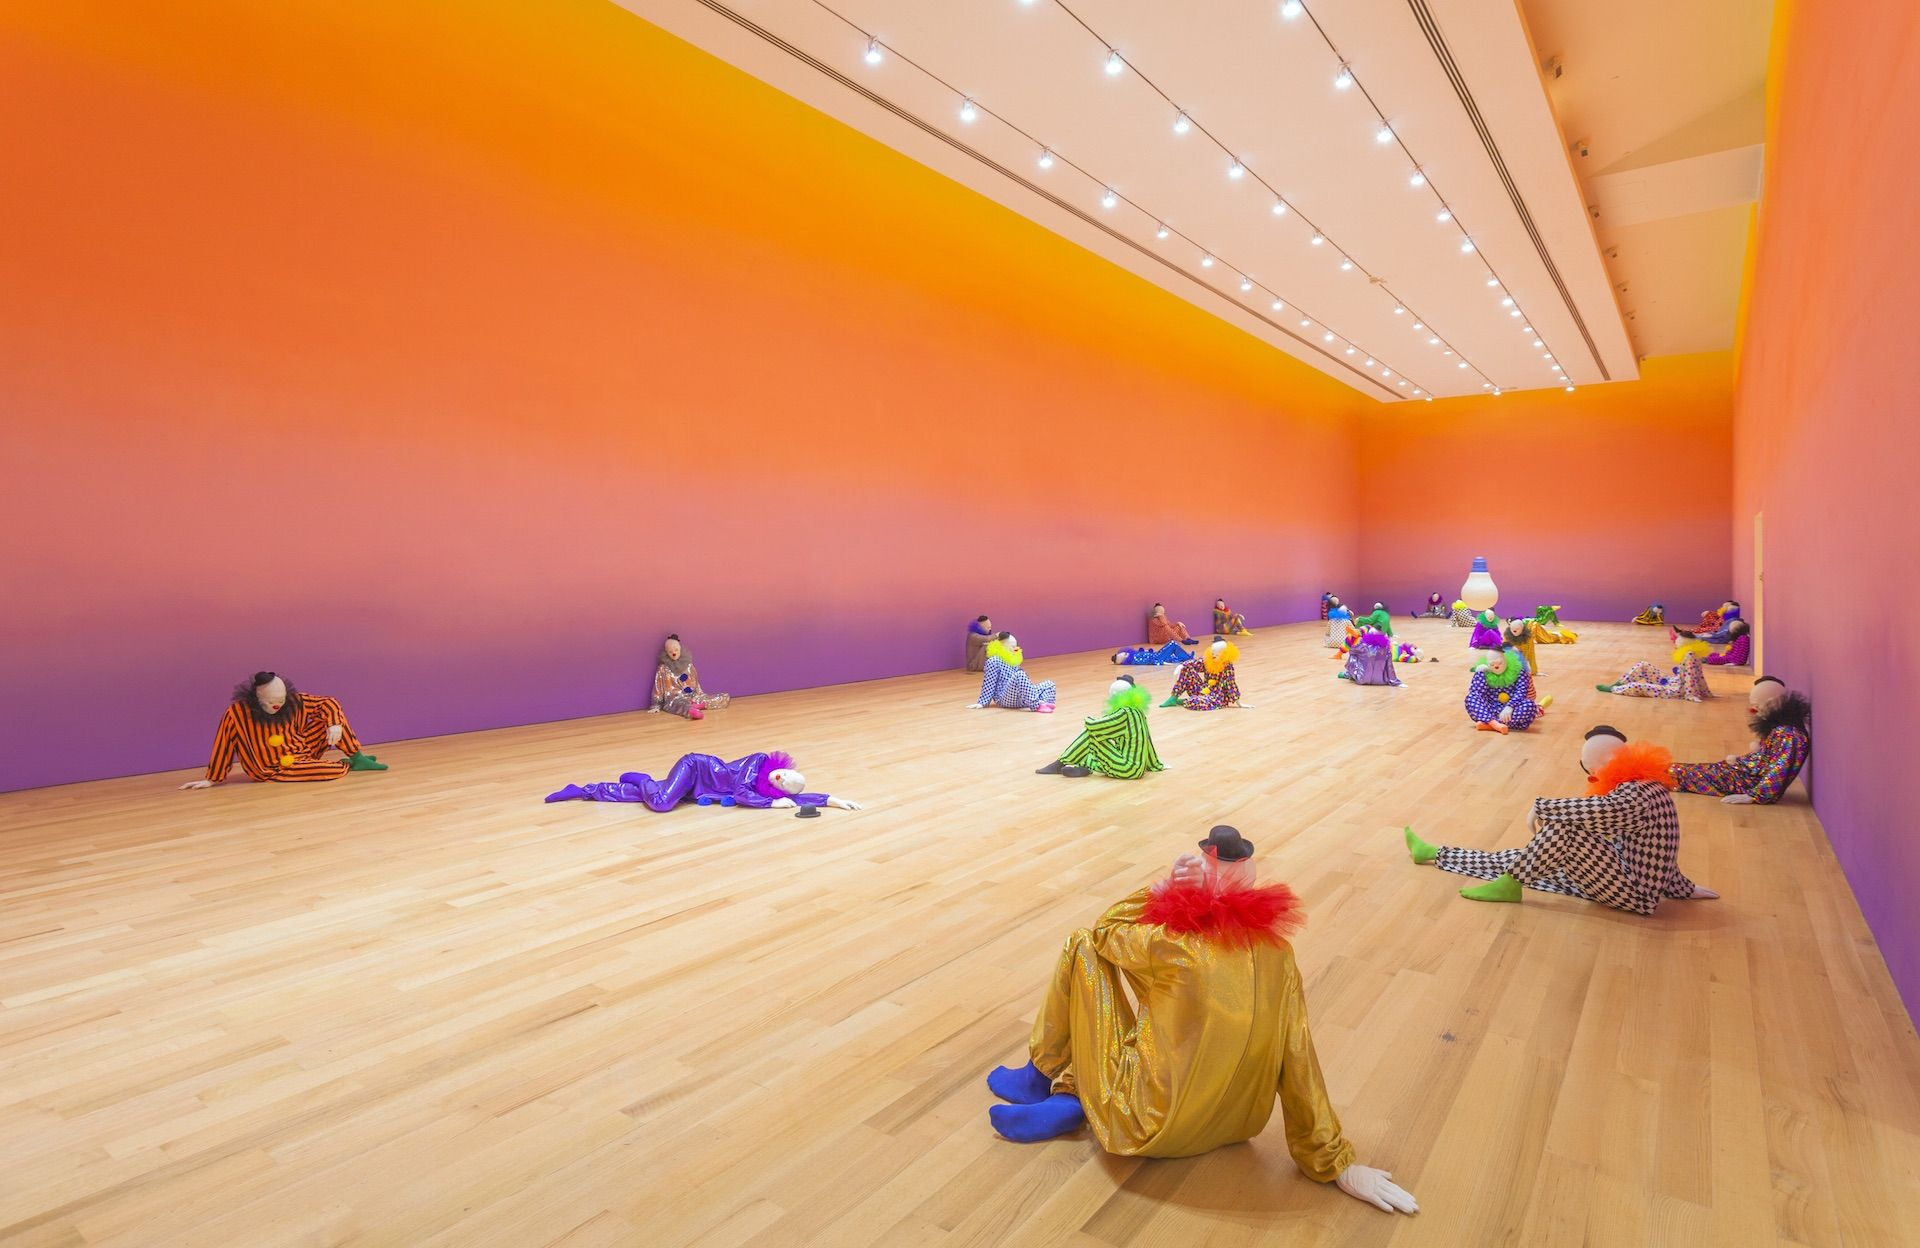 Beyond Art Basel: 5 Must-See Museums In Miami